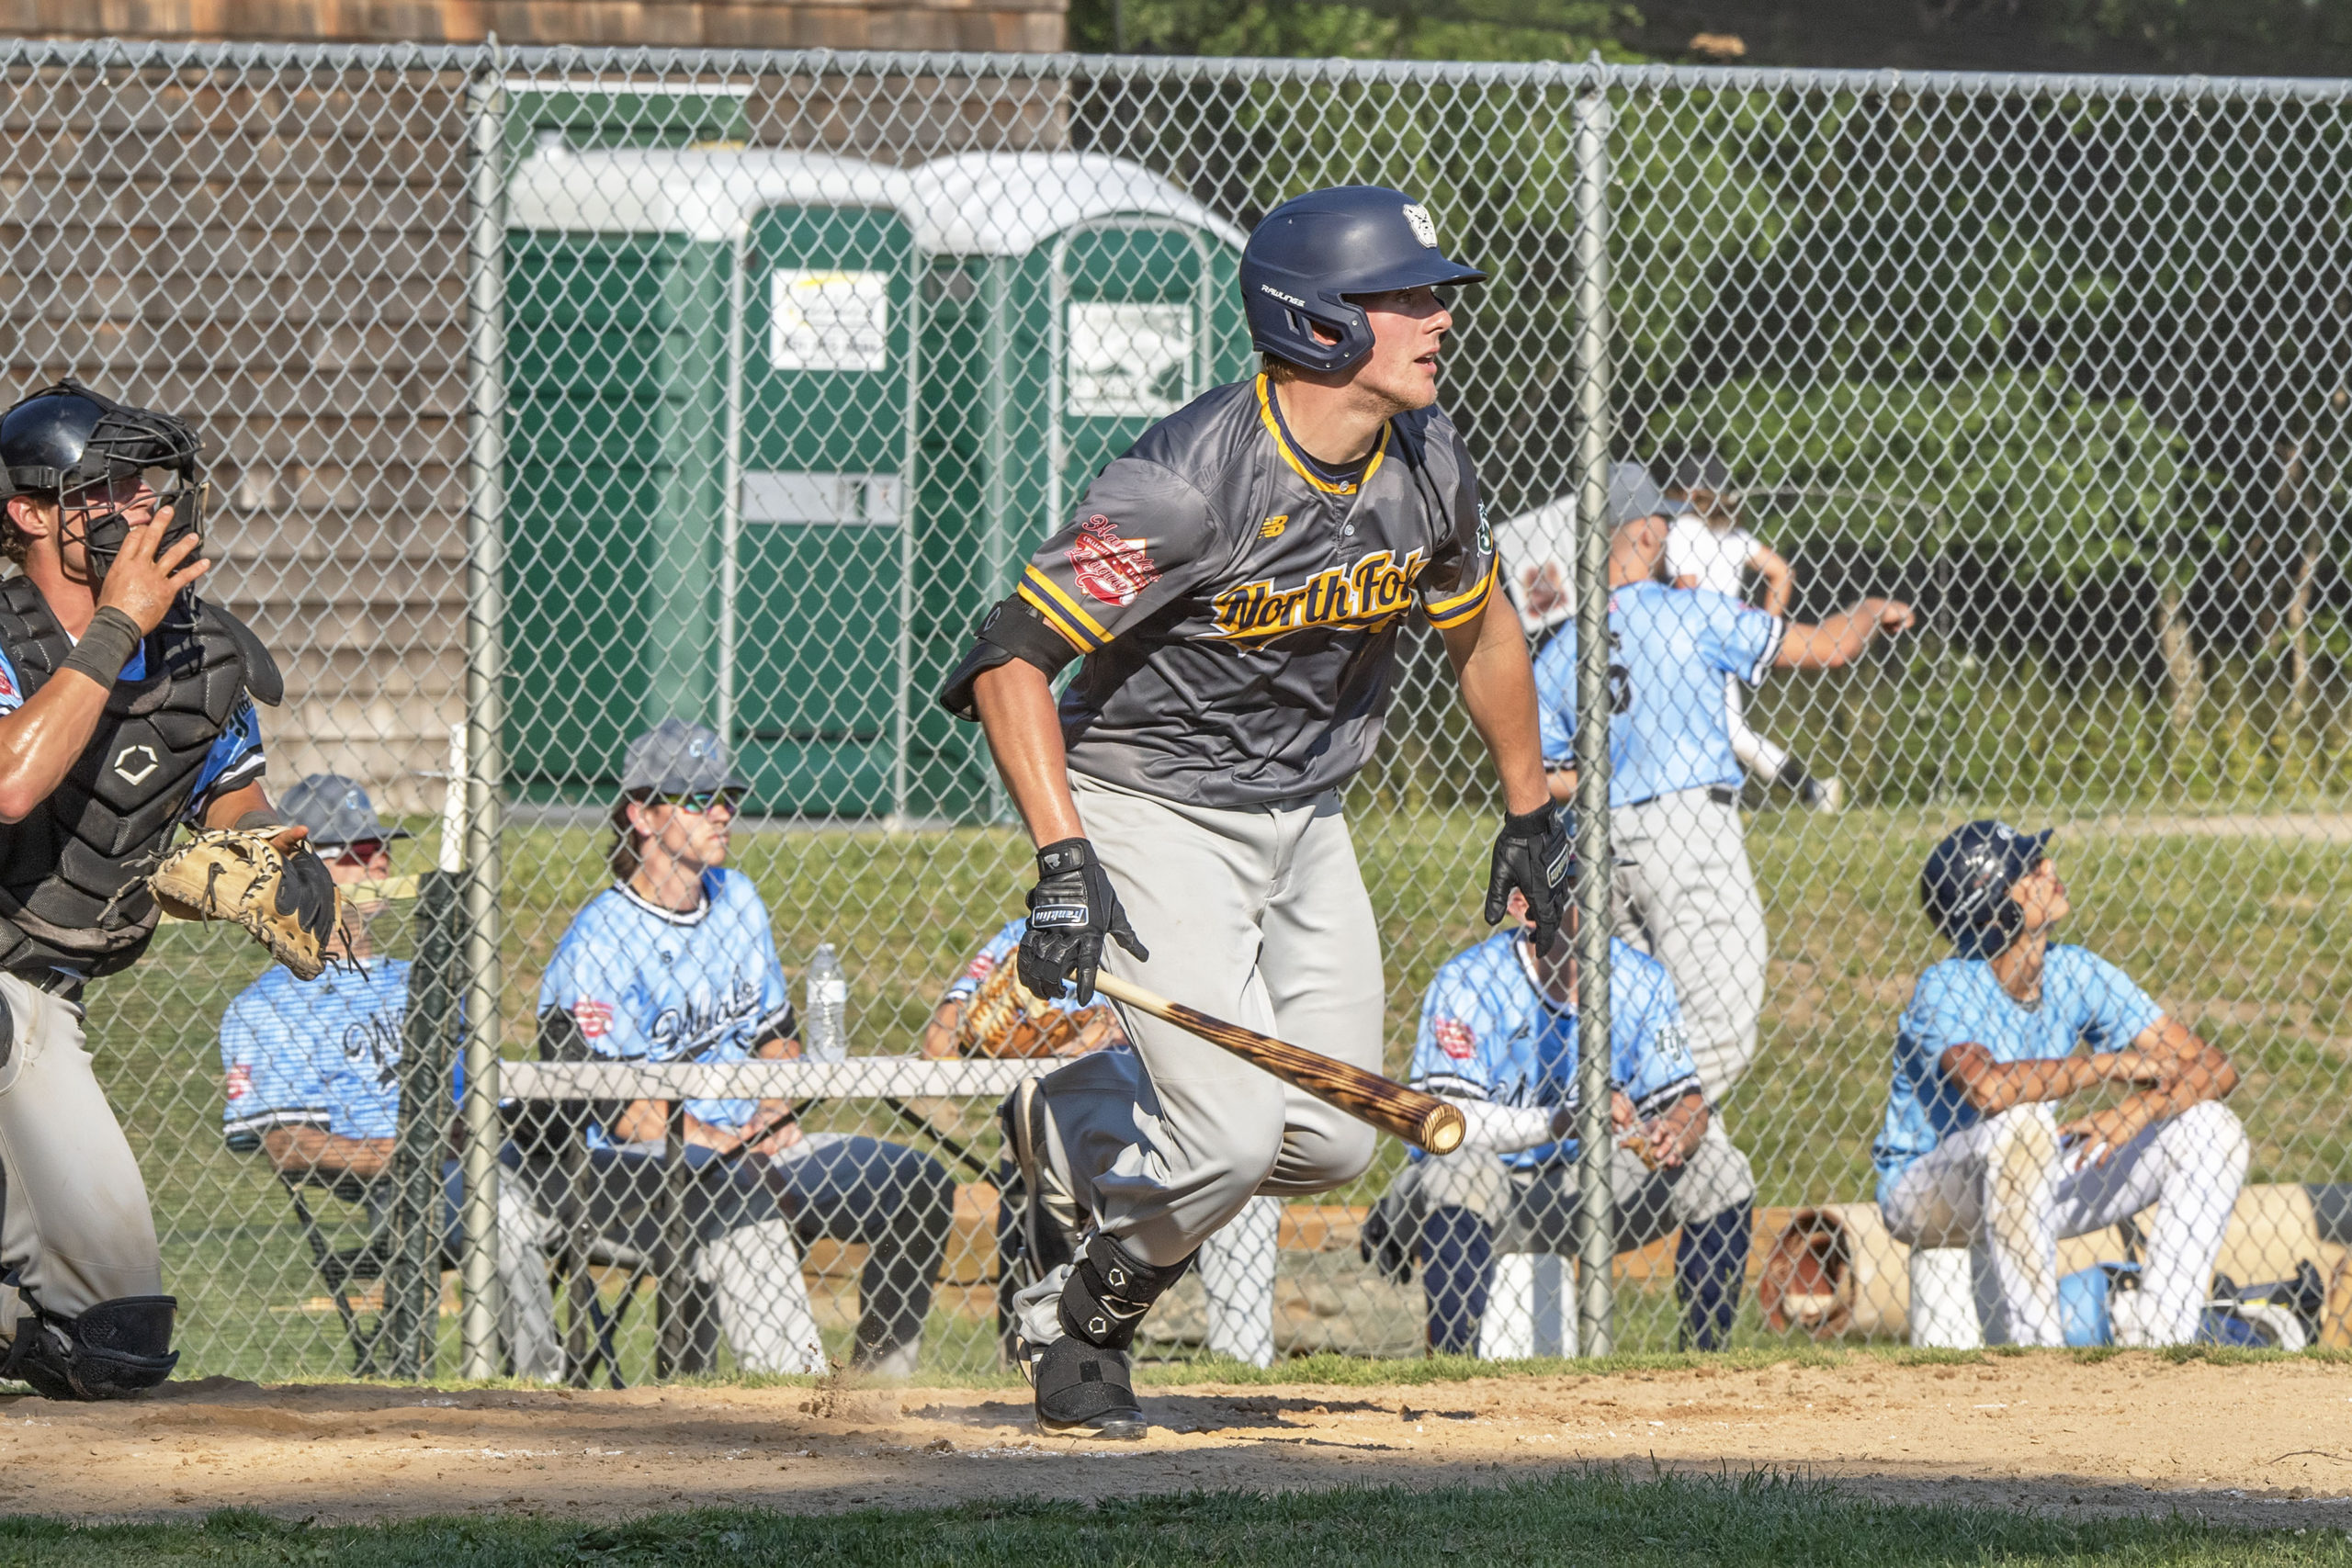 Osprey Kyle Lyons heads for first after getting a hit.